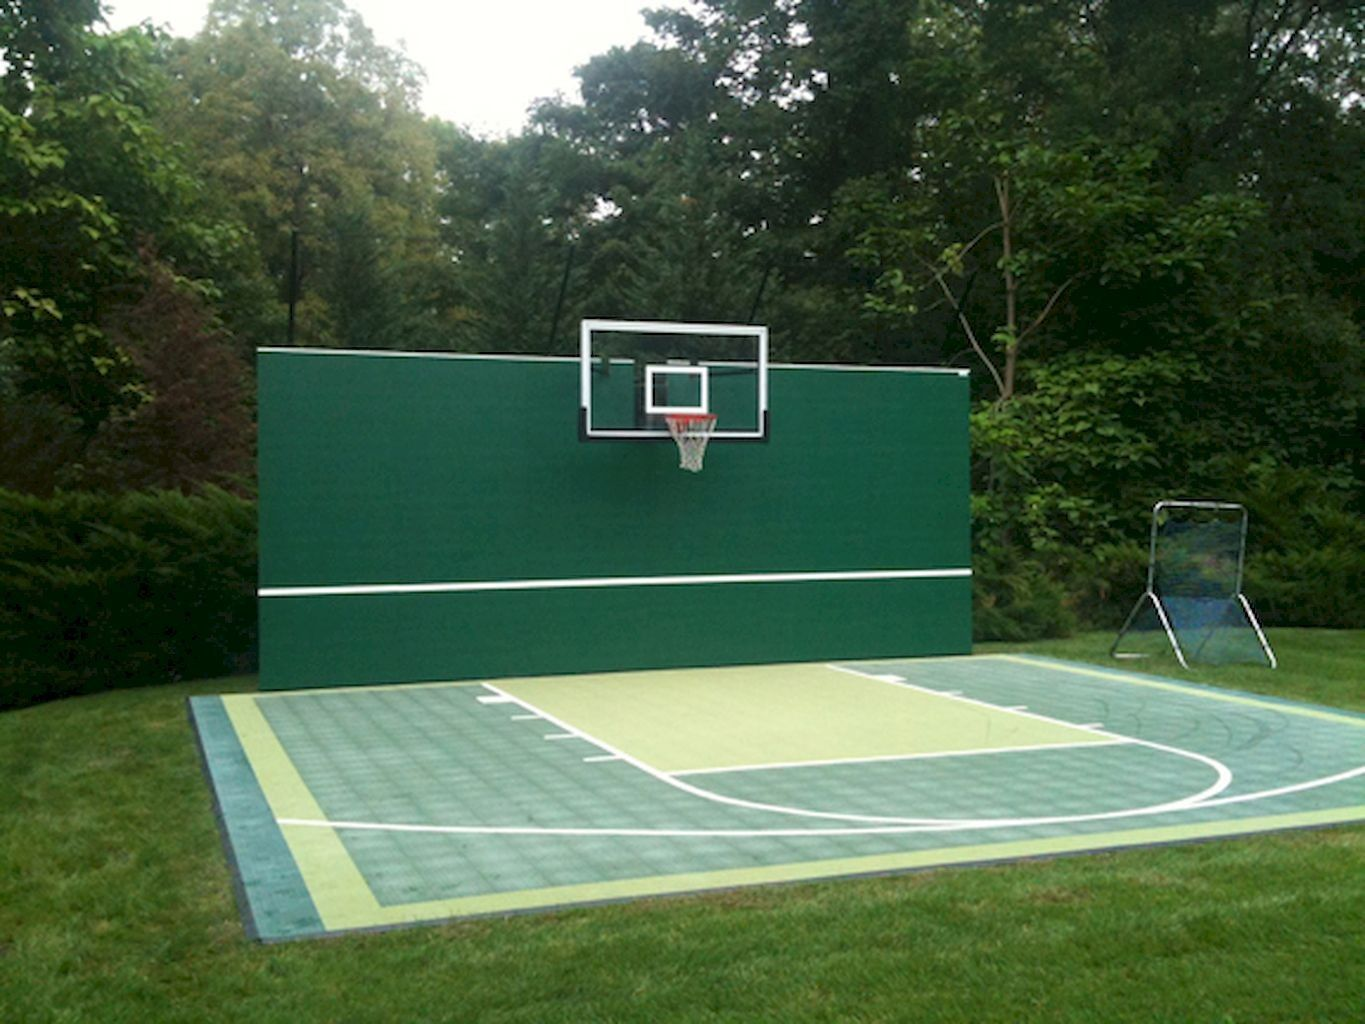 20 Nice Sport Court Backyard Design Ideas Backyard Playground Backyard Sports Backyard Court